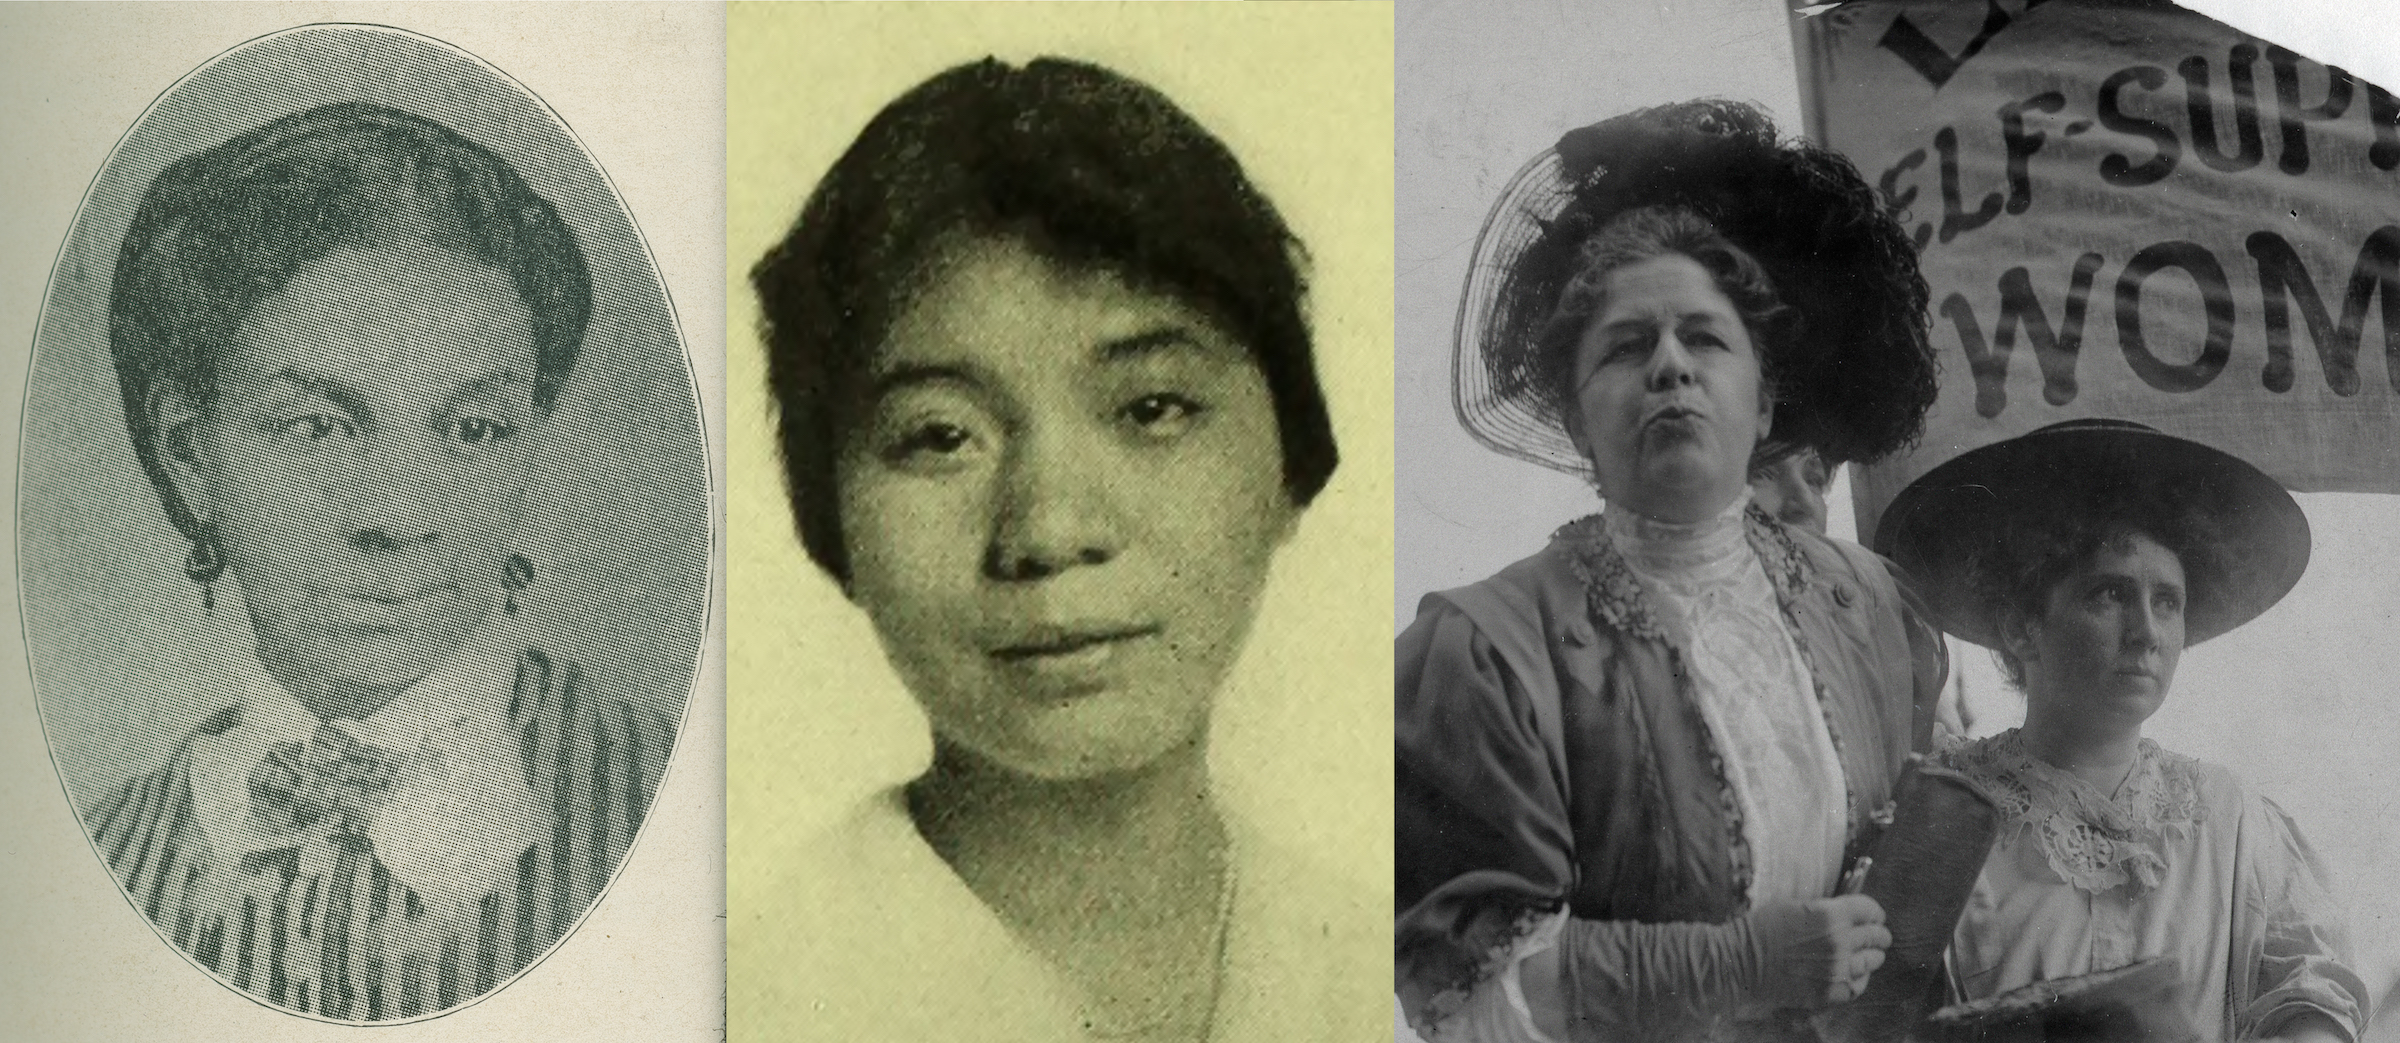 Banner image with portraits of Sarah J.S. Tompkins Garnet and Mabel Lee, and image of Harriot Stanton Blatch and Rose Schneiderman